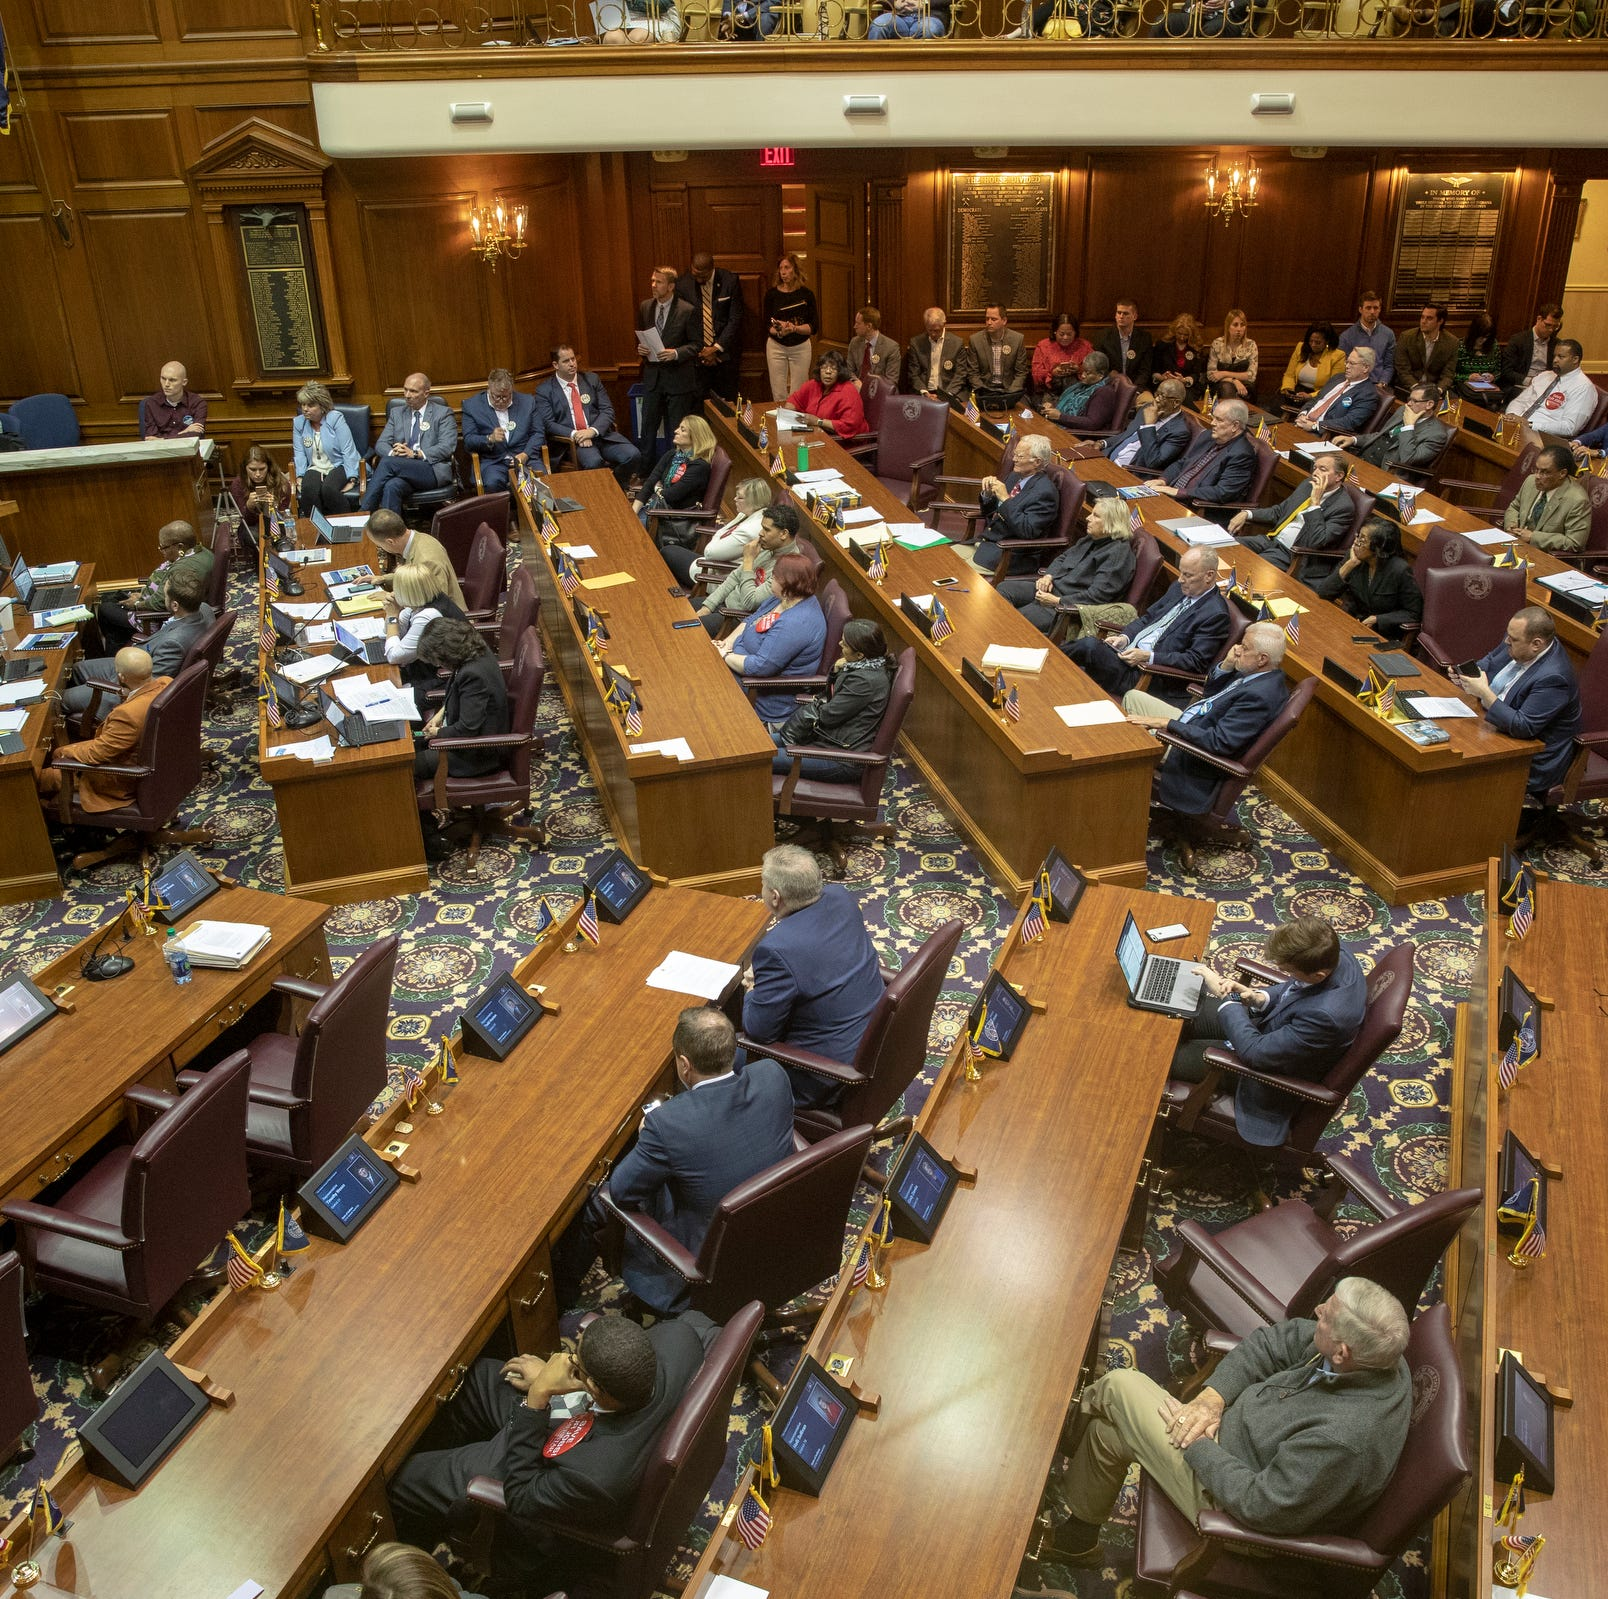 Indiana 'loan shark' bill backed by payday and subprime lenders advances to House floor